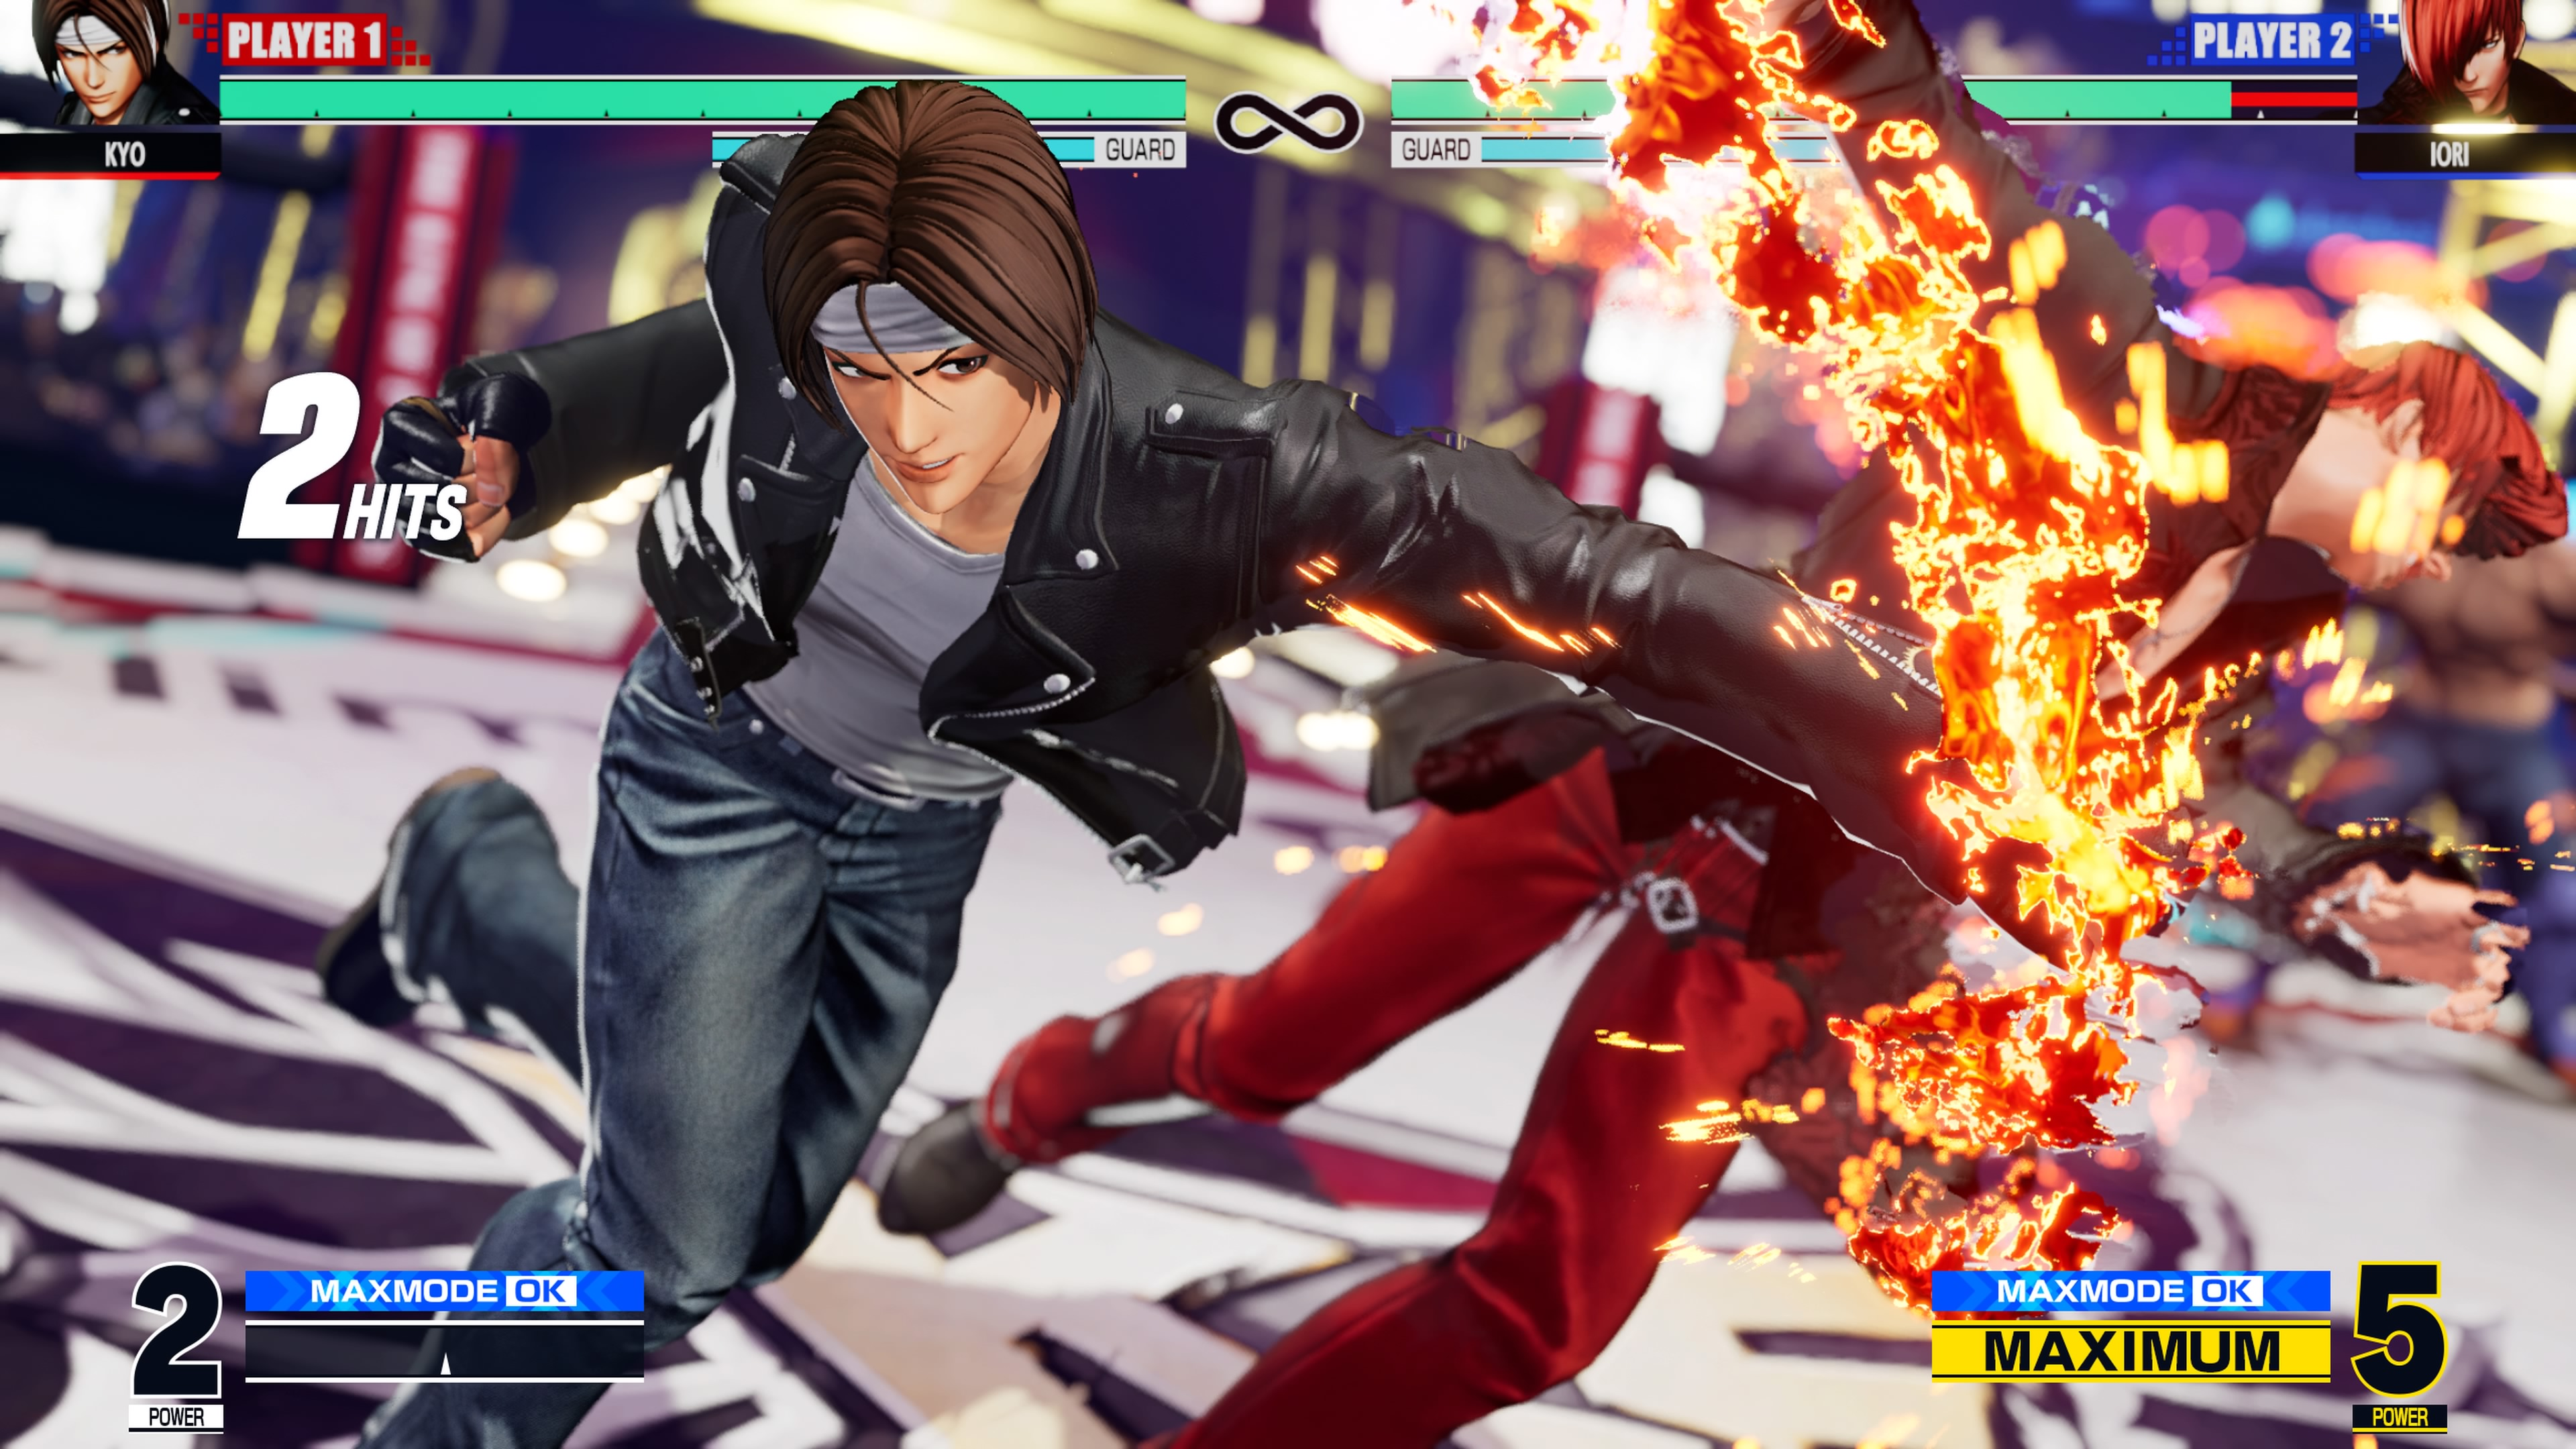 Скриншот №1 к THE KING OF FIGHTERS XV Standard Edition PS4 and PS5